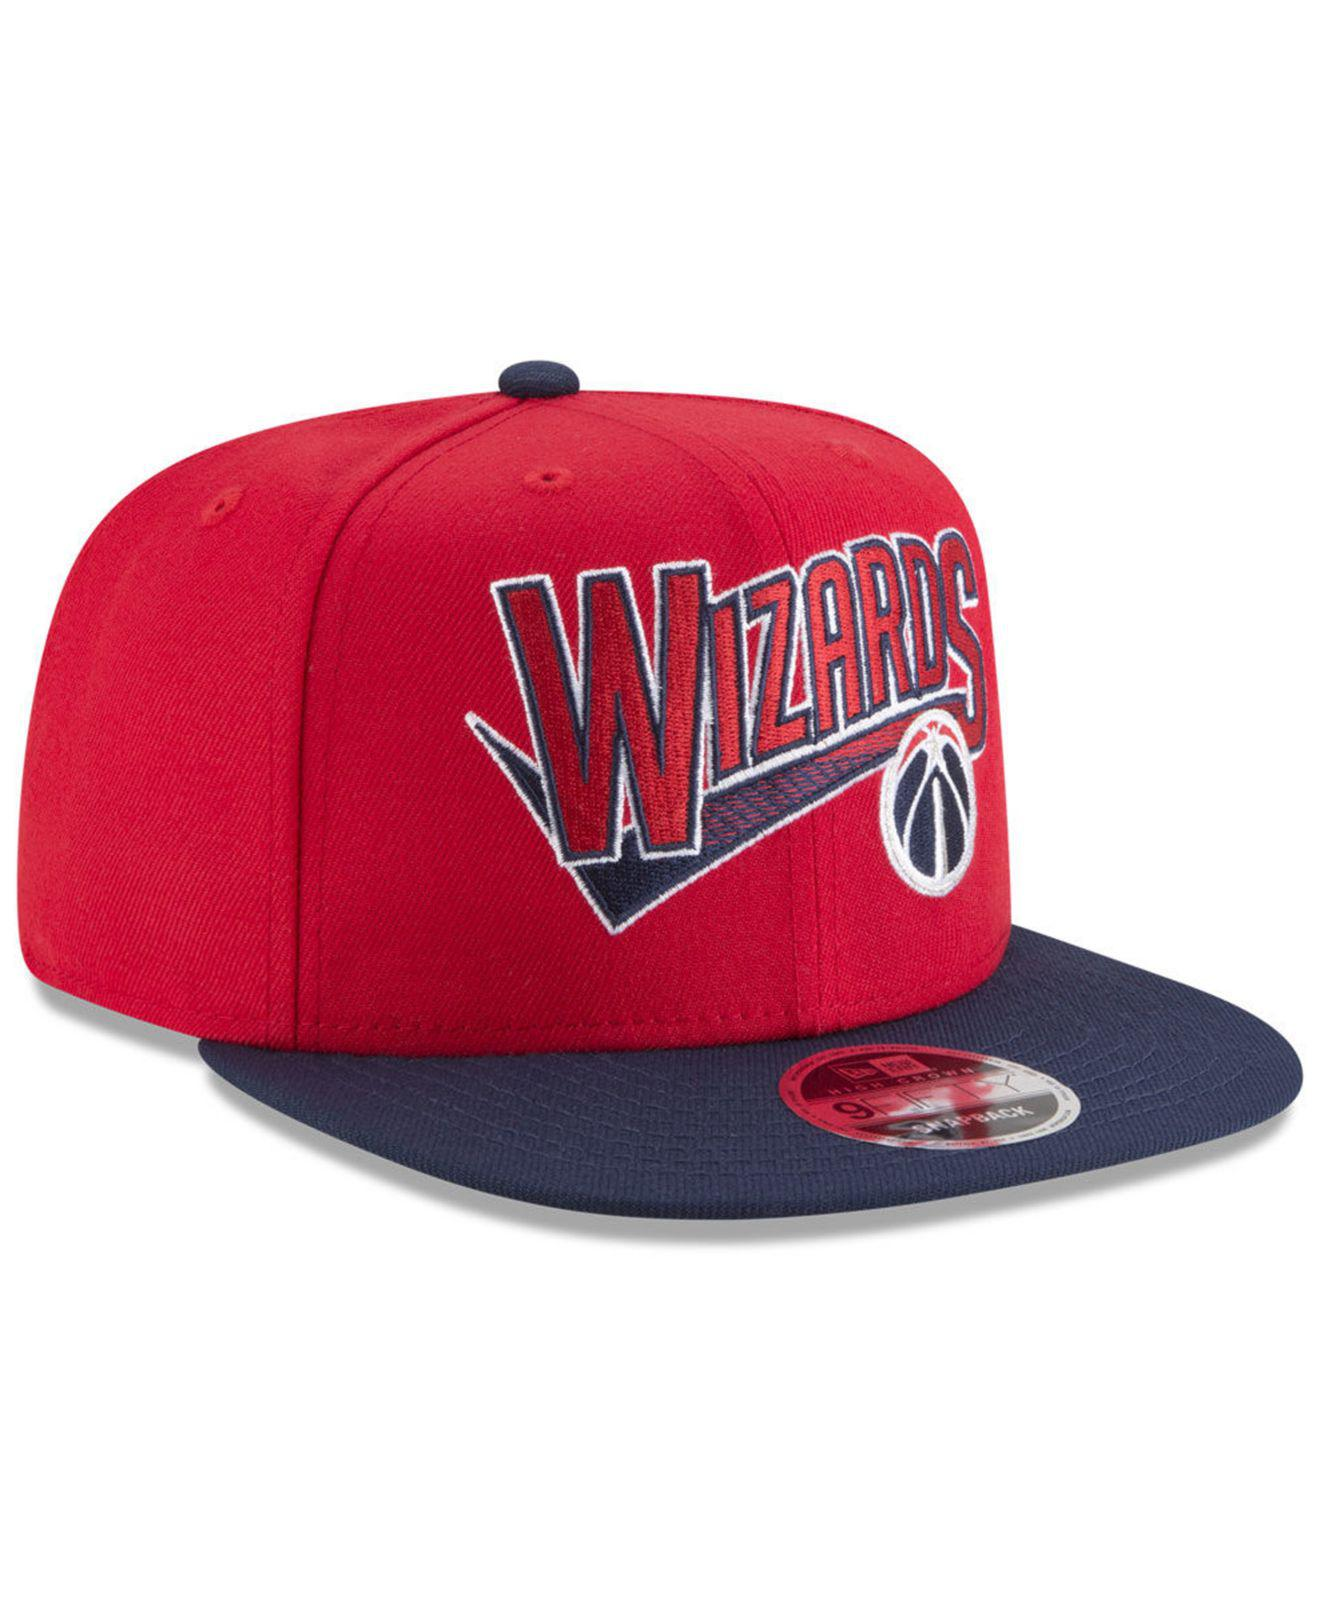 ff10d395e9aff ... where to buy washington wizards retro tail 9fifty snapback cap for men  lyst. view fullscreen